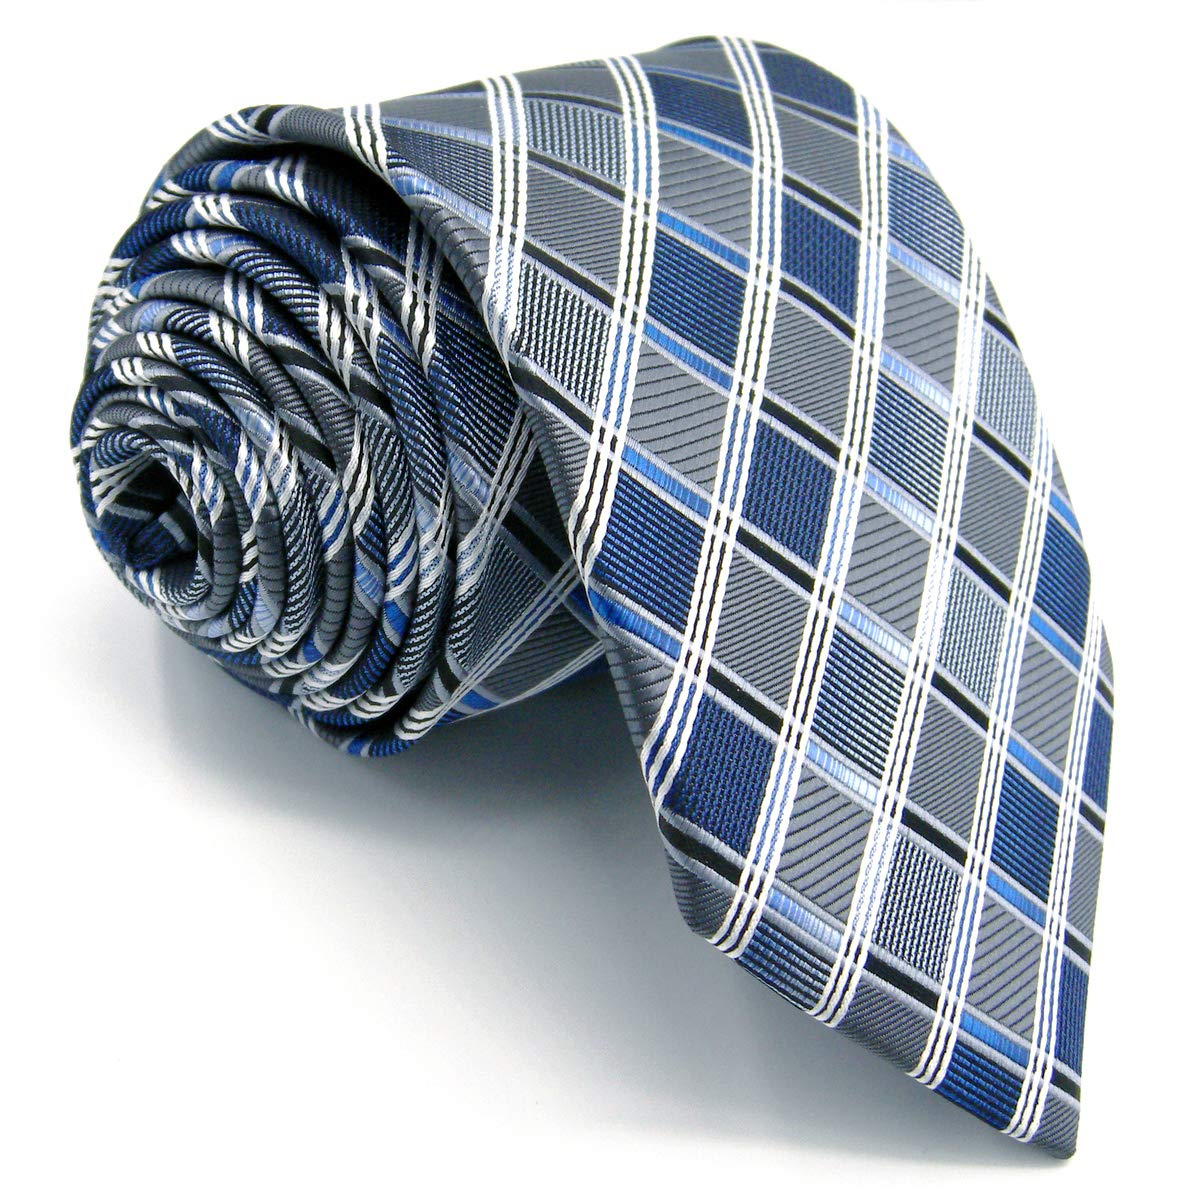 Shlax&Wing Skinny Ties For Men Blue Checkered Checks Silk Neckties Suit Shlax & Wing AZ17